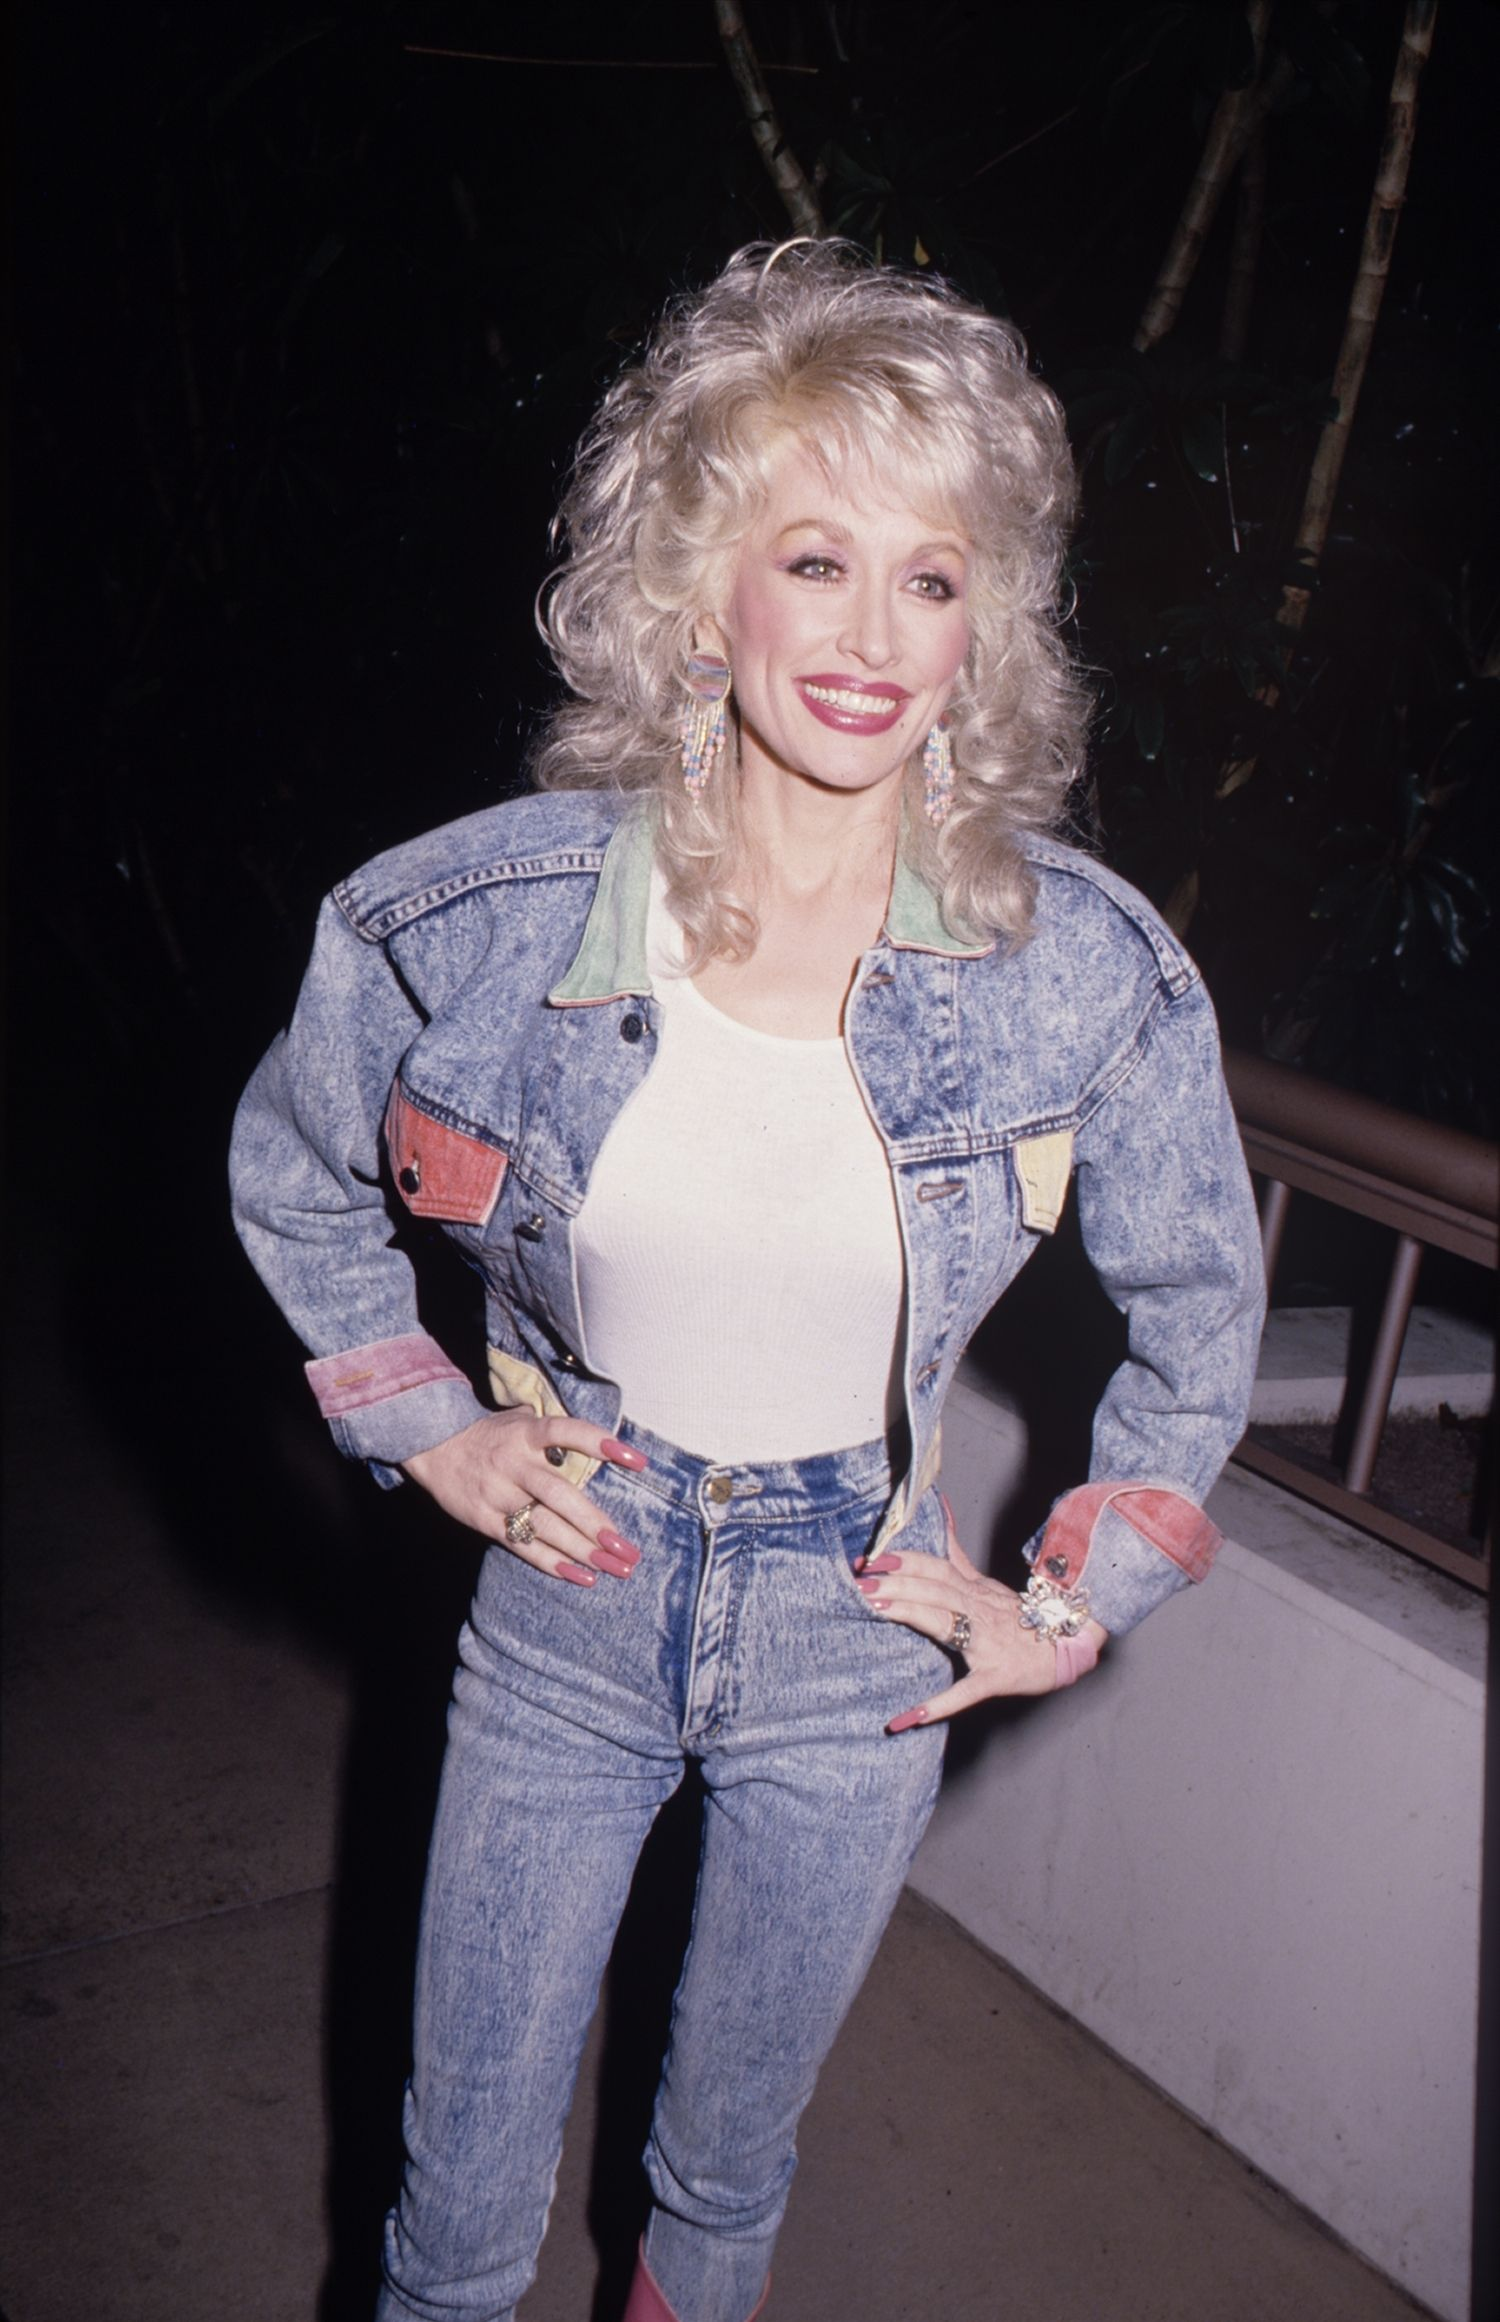 Dolly Parton nudes (27 foto and video), Sexy, Fappening, Feet, bra 2017